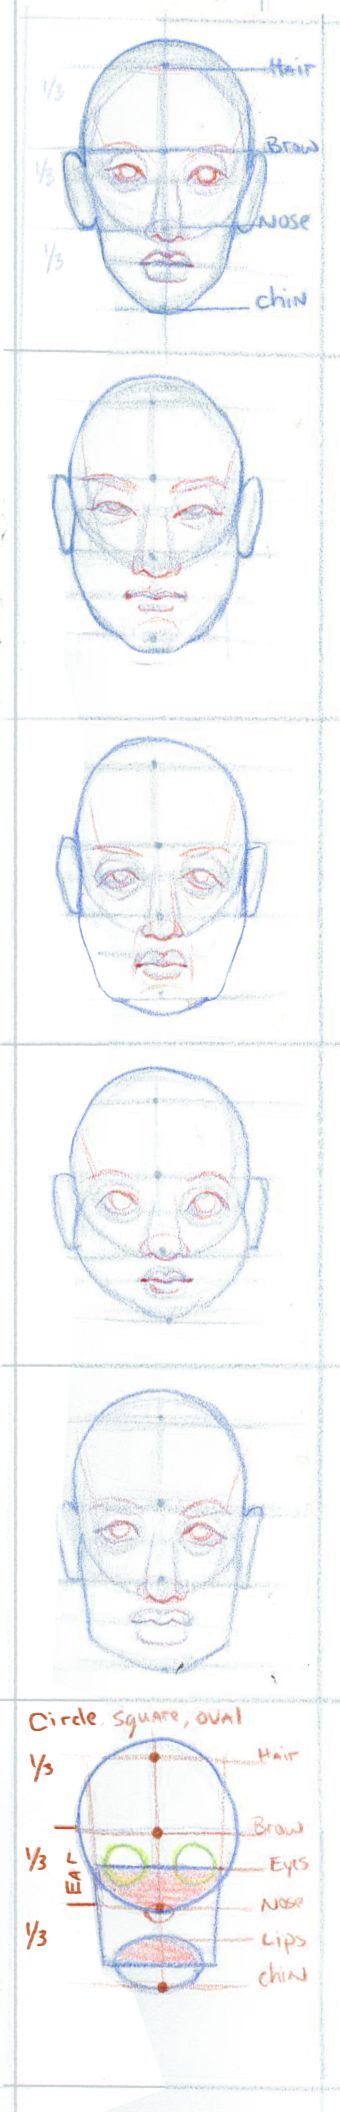 This is exactly how my 5th grade art teacher taught us to draw a head / face.